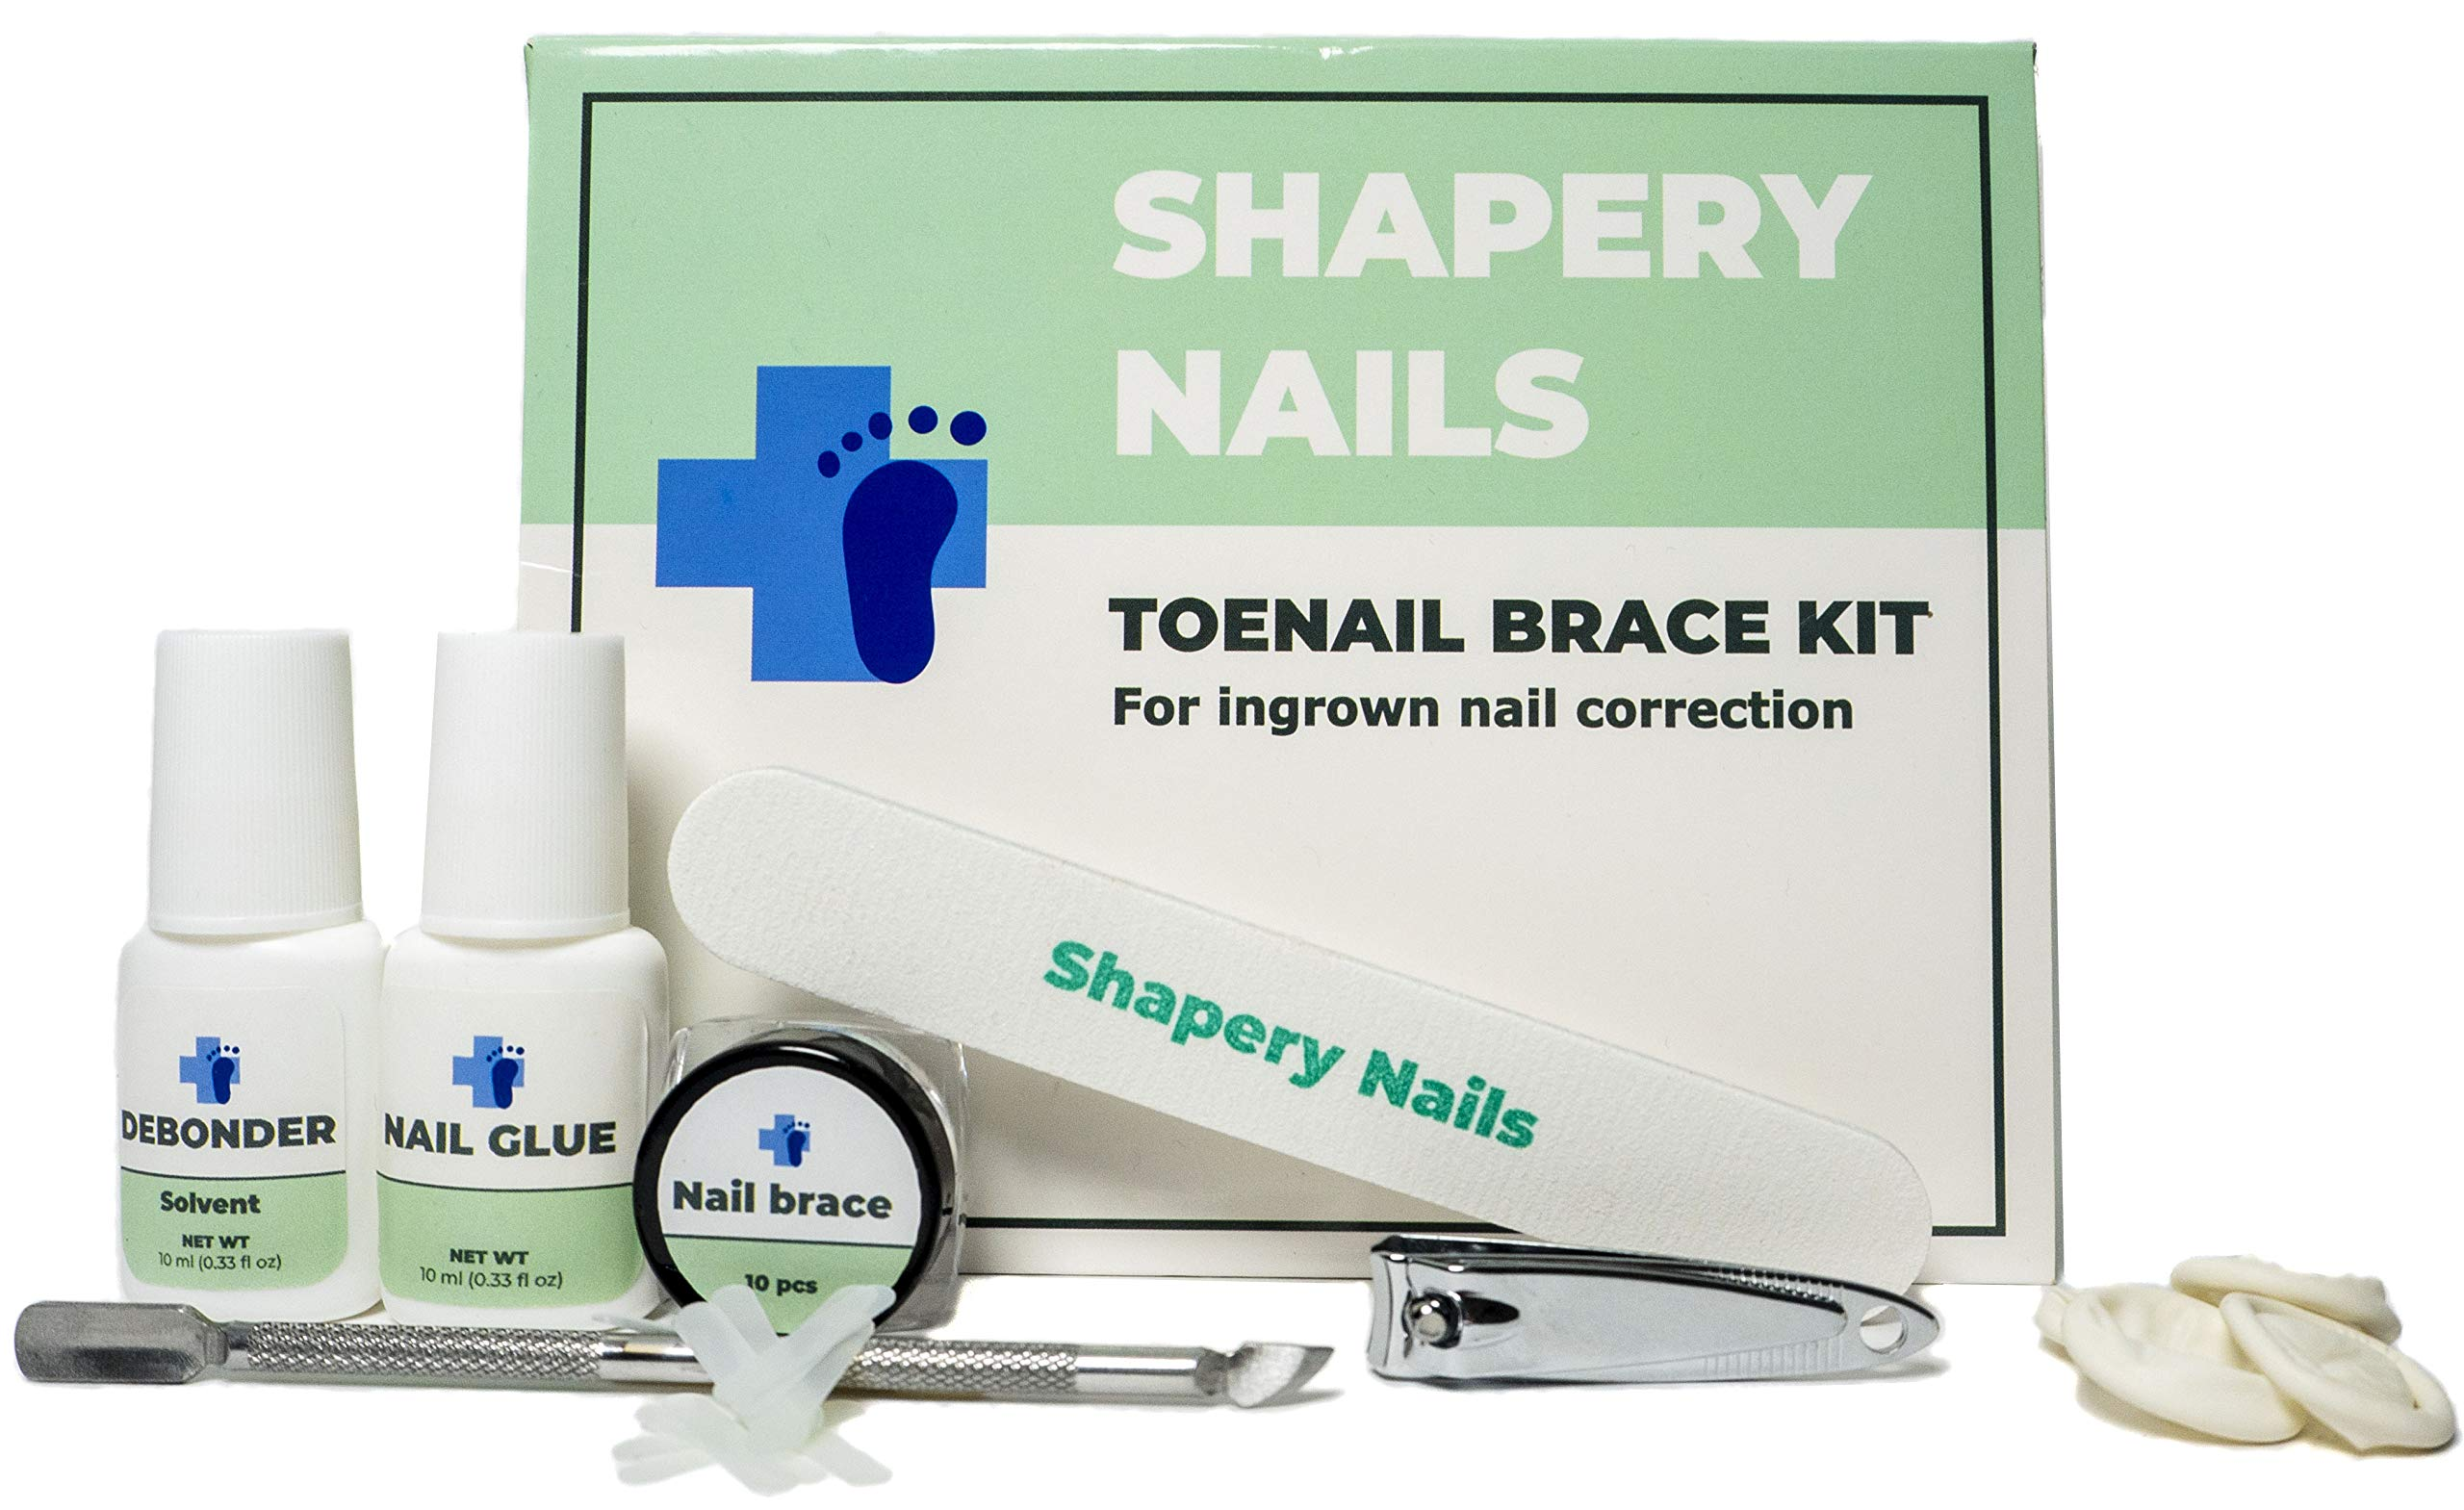 All you need - ingrown toenail removal home treatment kit by Shapery Nails. 10 Toenail braces, nail clippers to outgrow and lift ingrown nails. Pedicure tools for quick nail curvature correction. by Shapery Nails